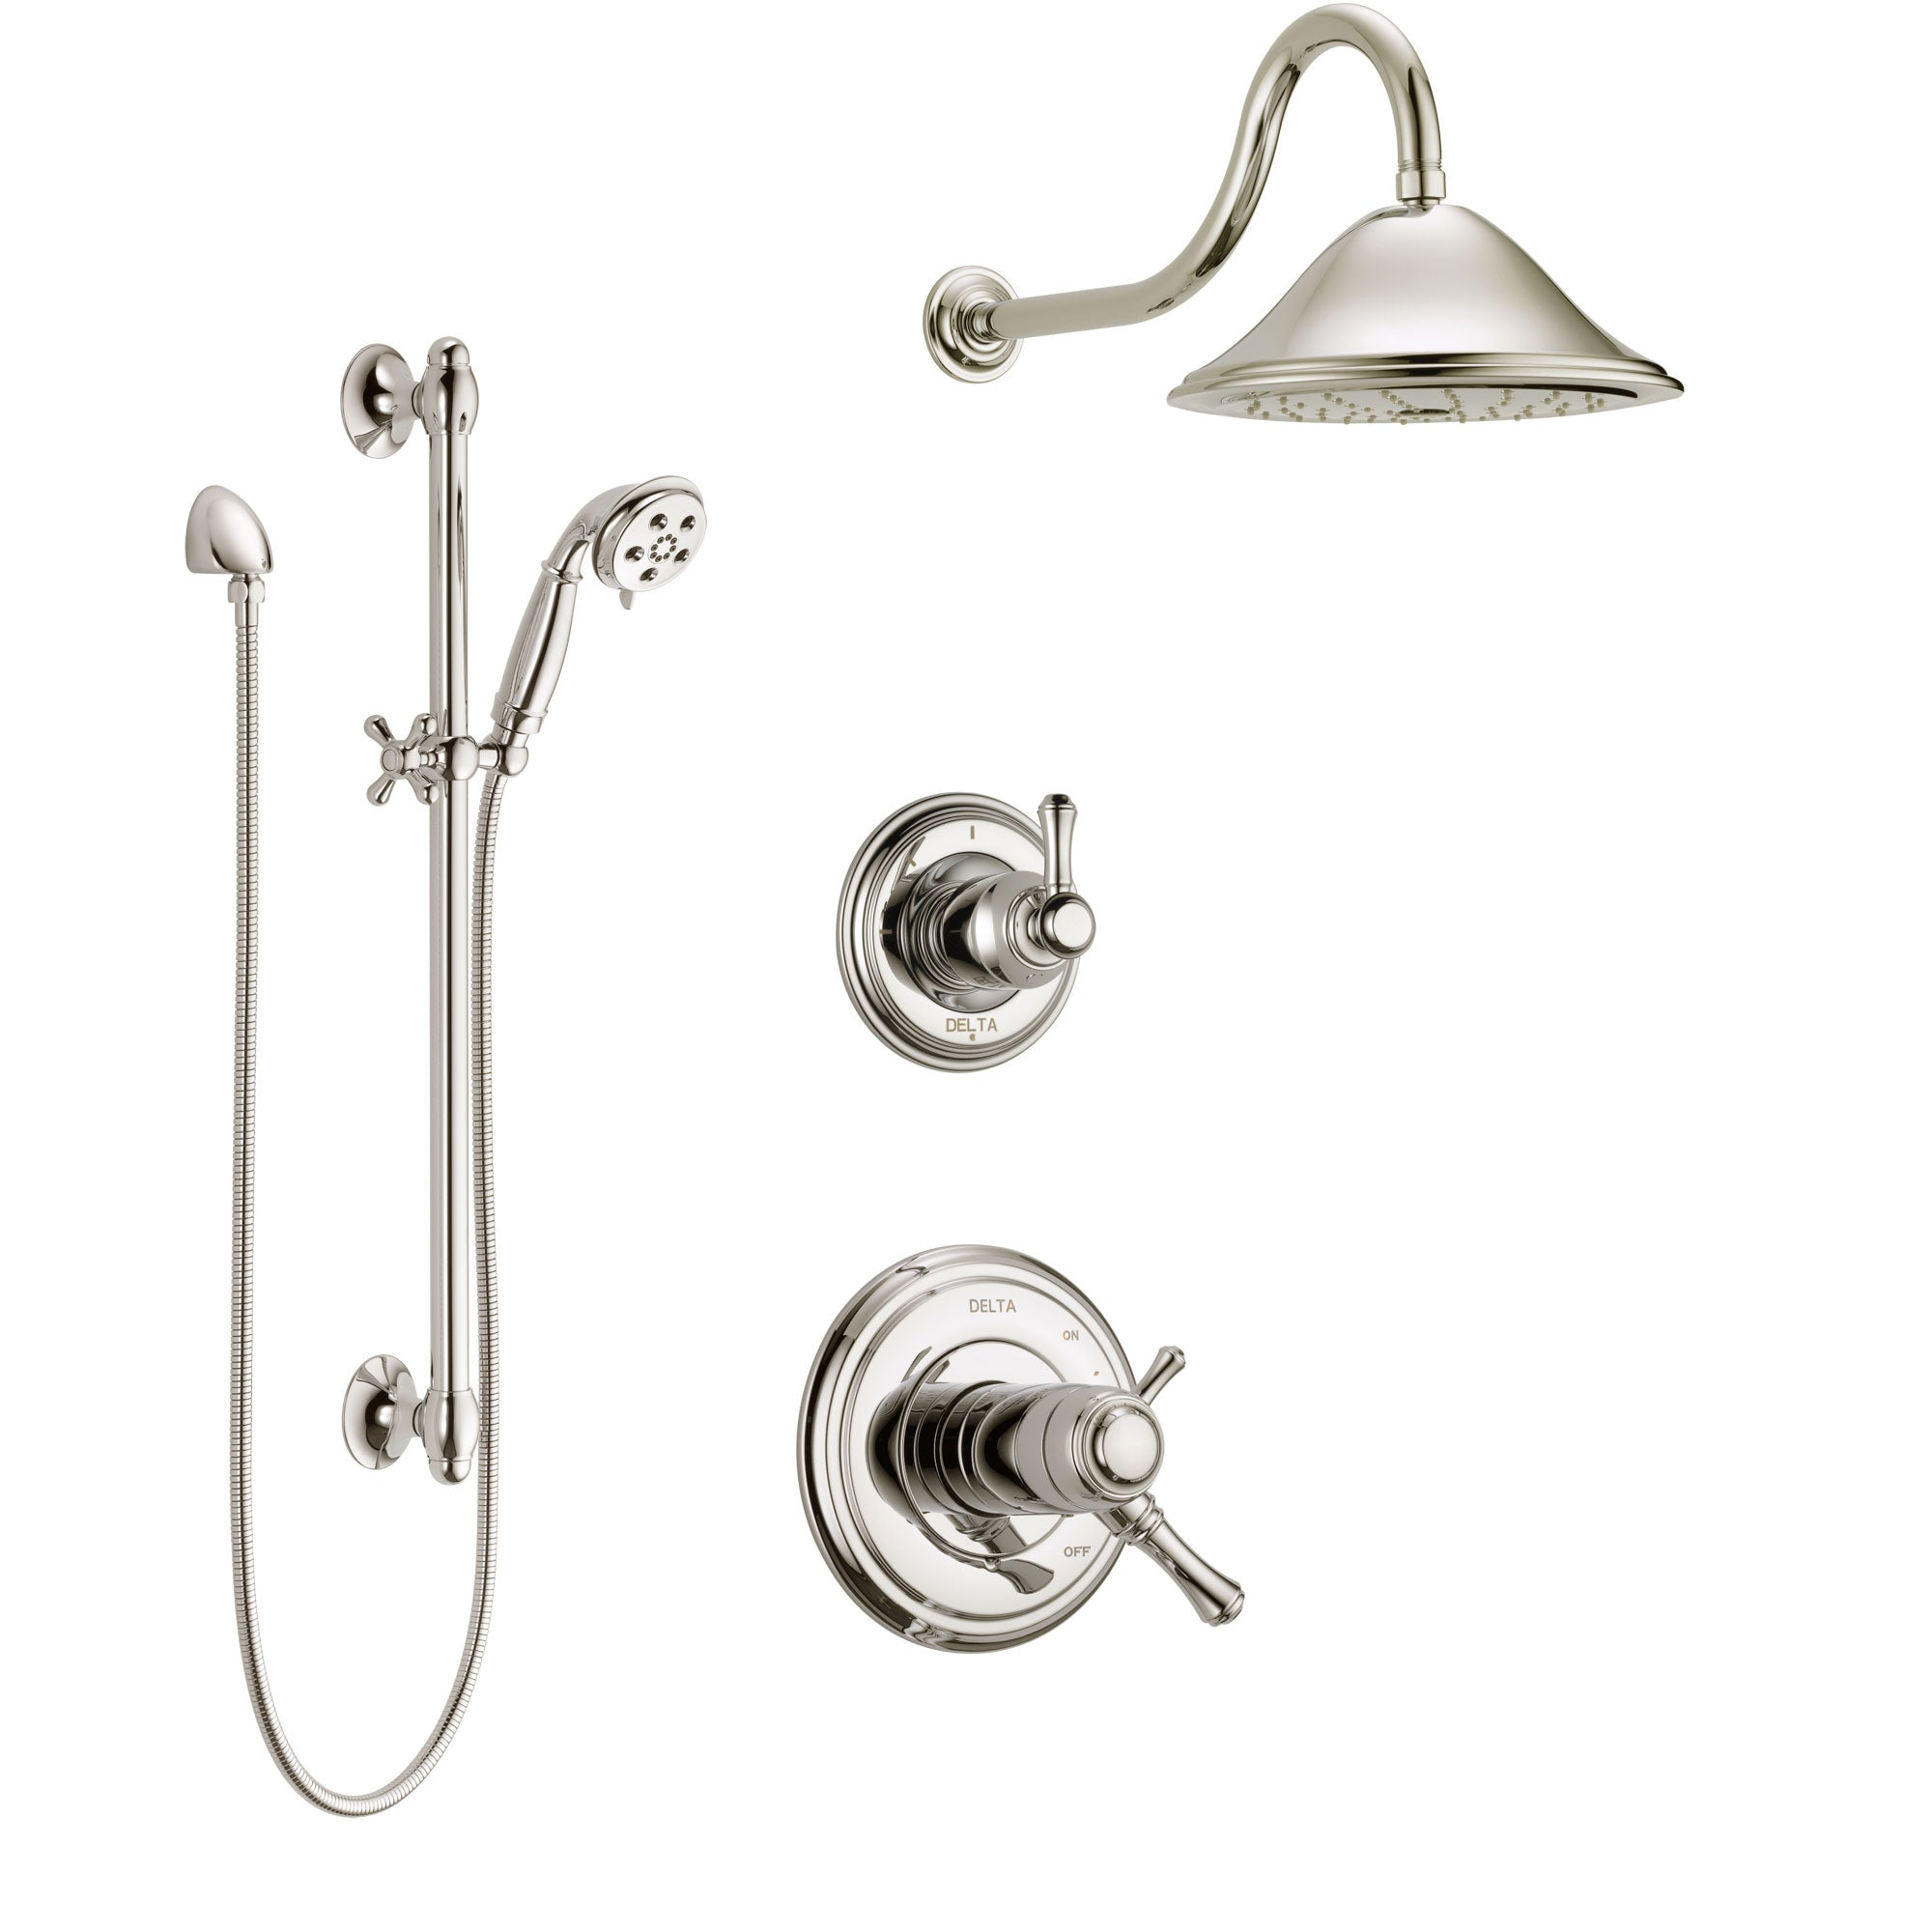 Delta Cassidy Polished Nickel Shower System with Dual Thermostatic Control Handle, Diverter, Showerhead, and Hand Shower with Slidebar SS17T2972PN2